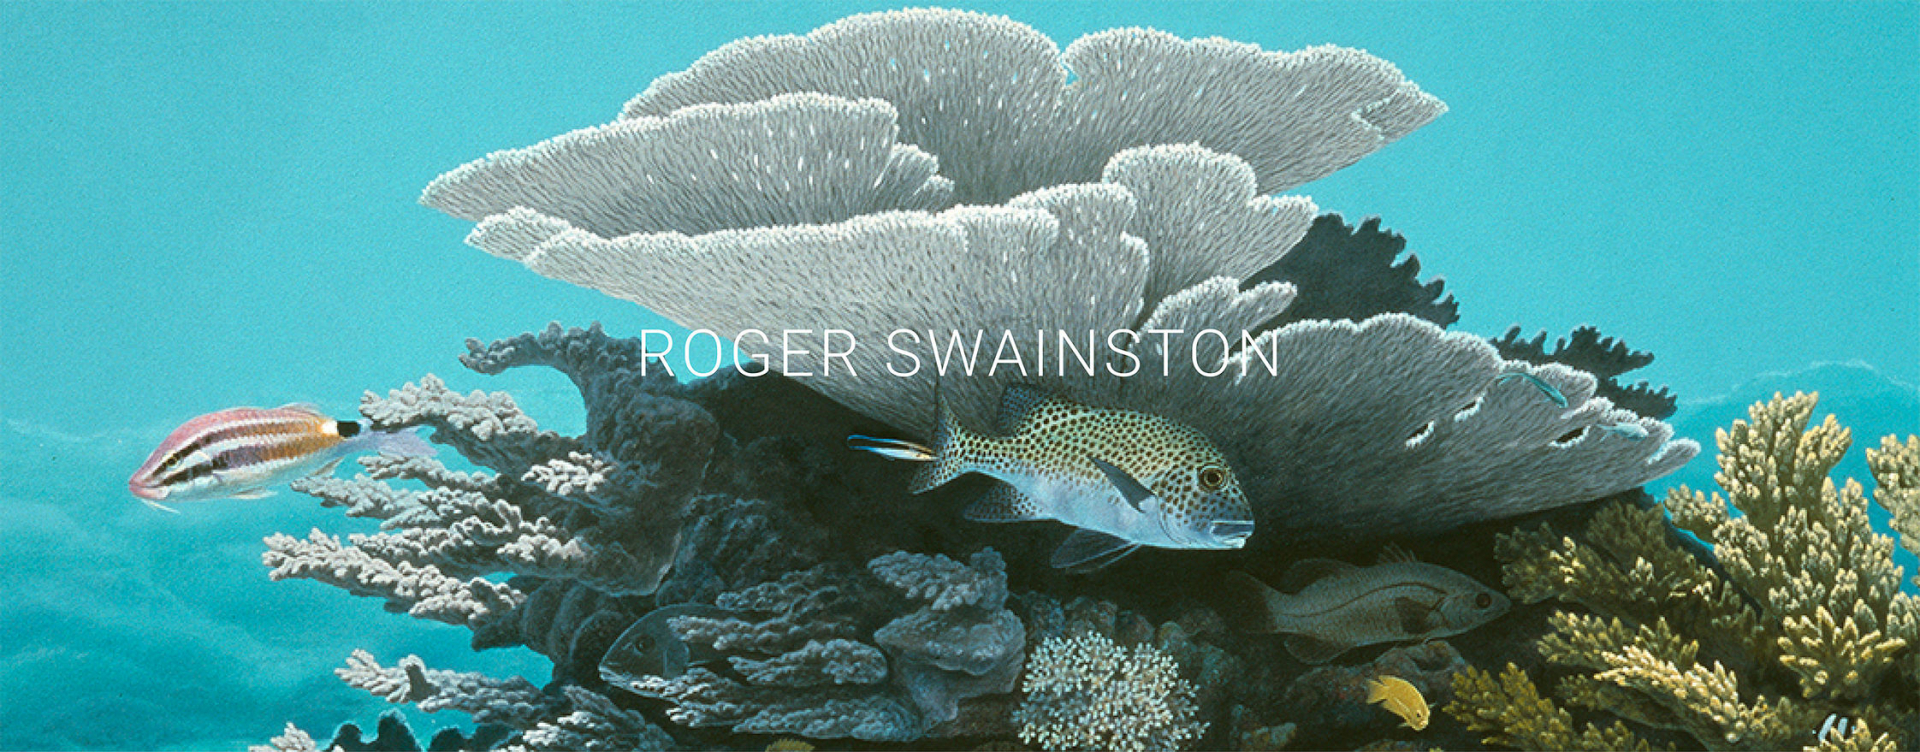 Anima Roger Swainston MINI PRO